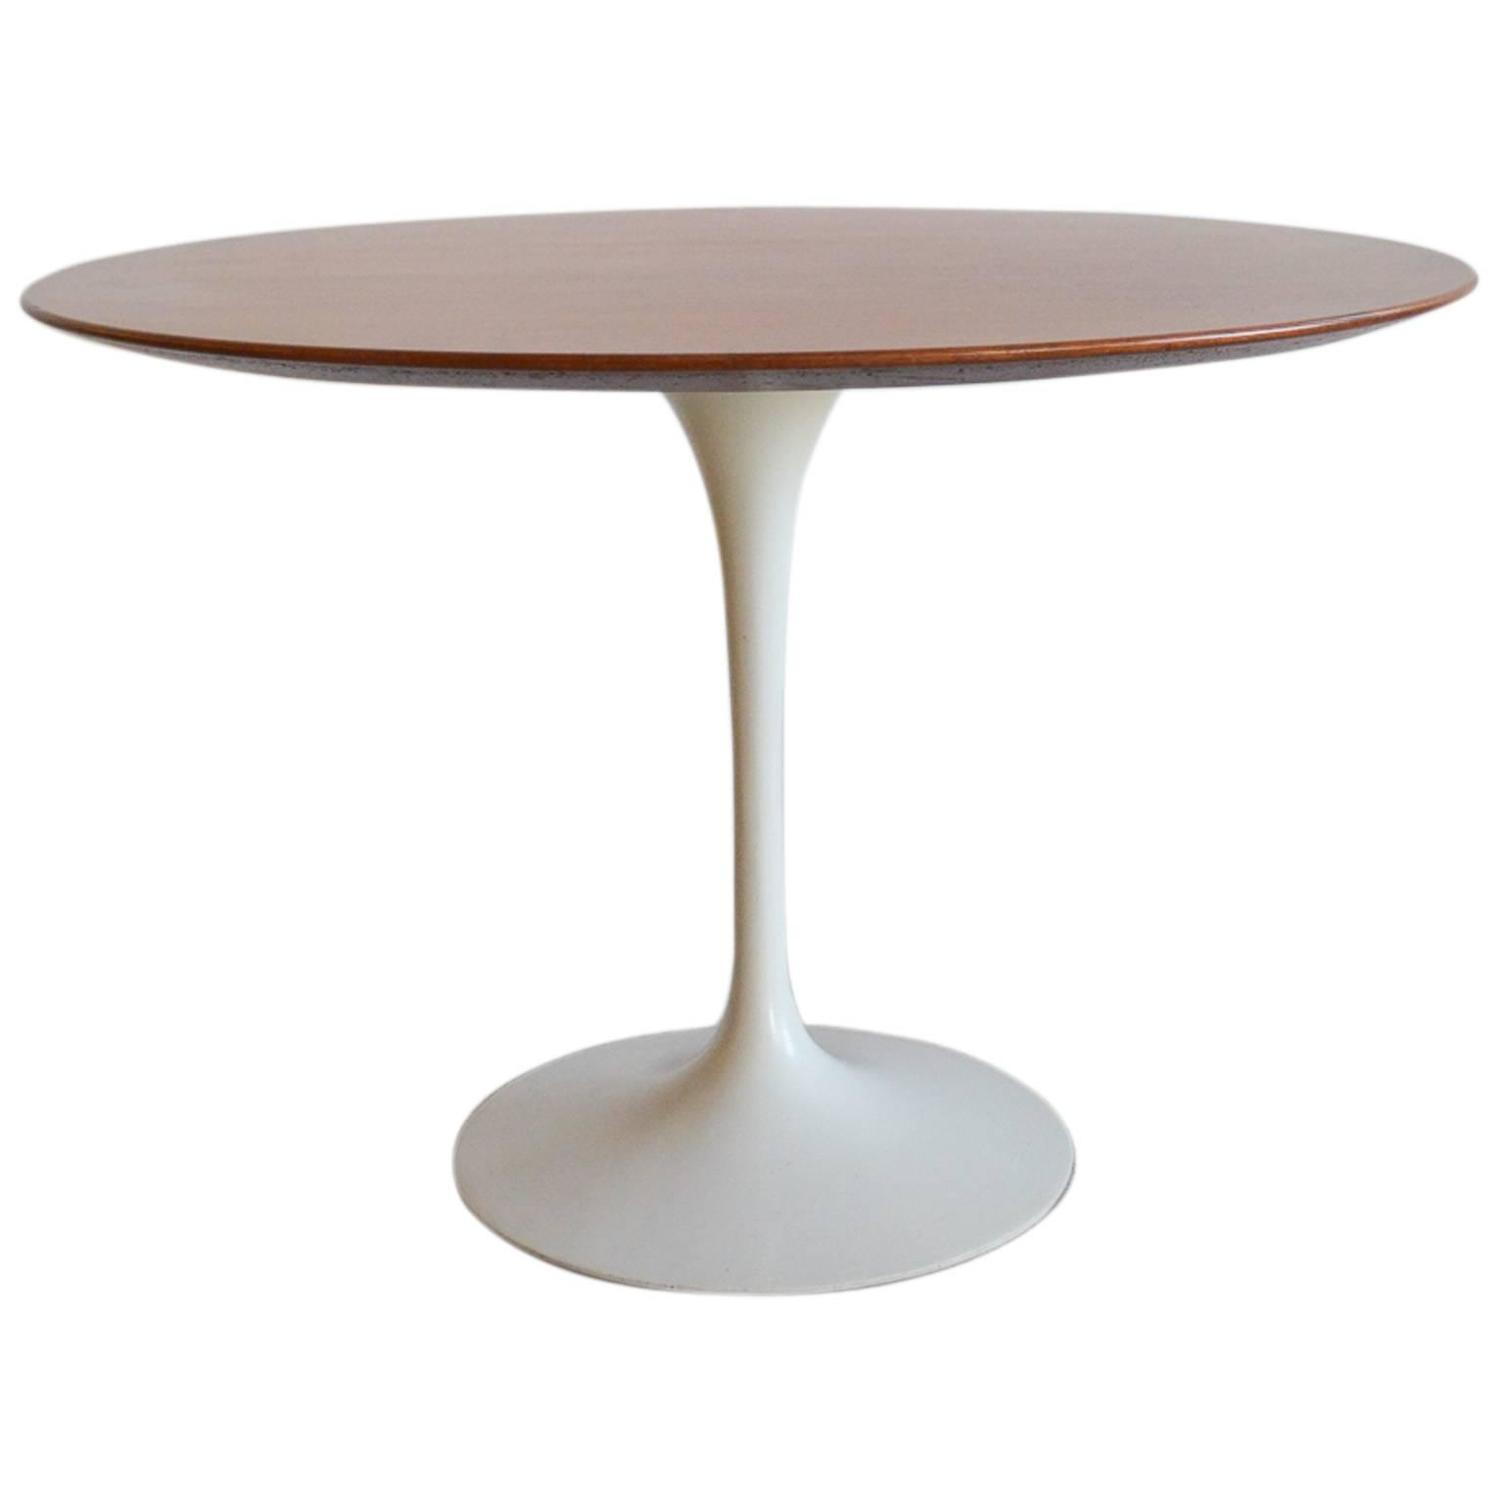 inspiration eero saarinen for knoll walnut dining table at 1stdibs